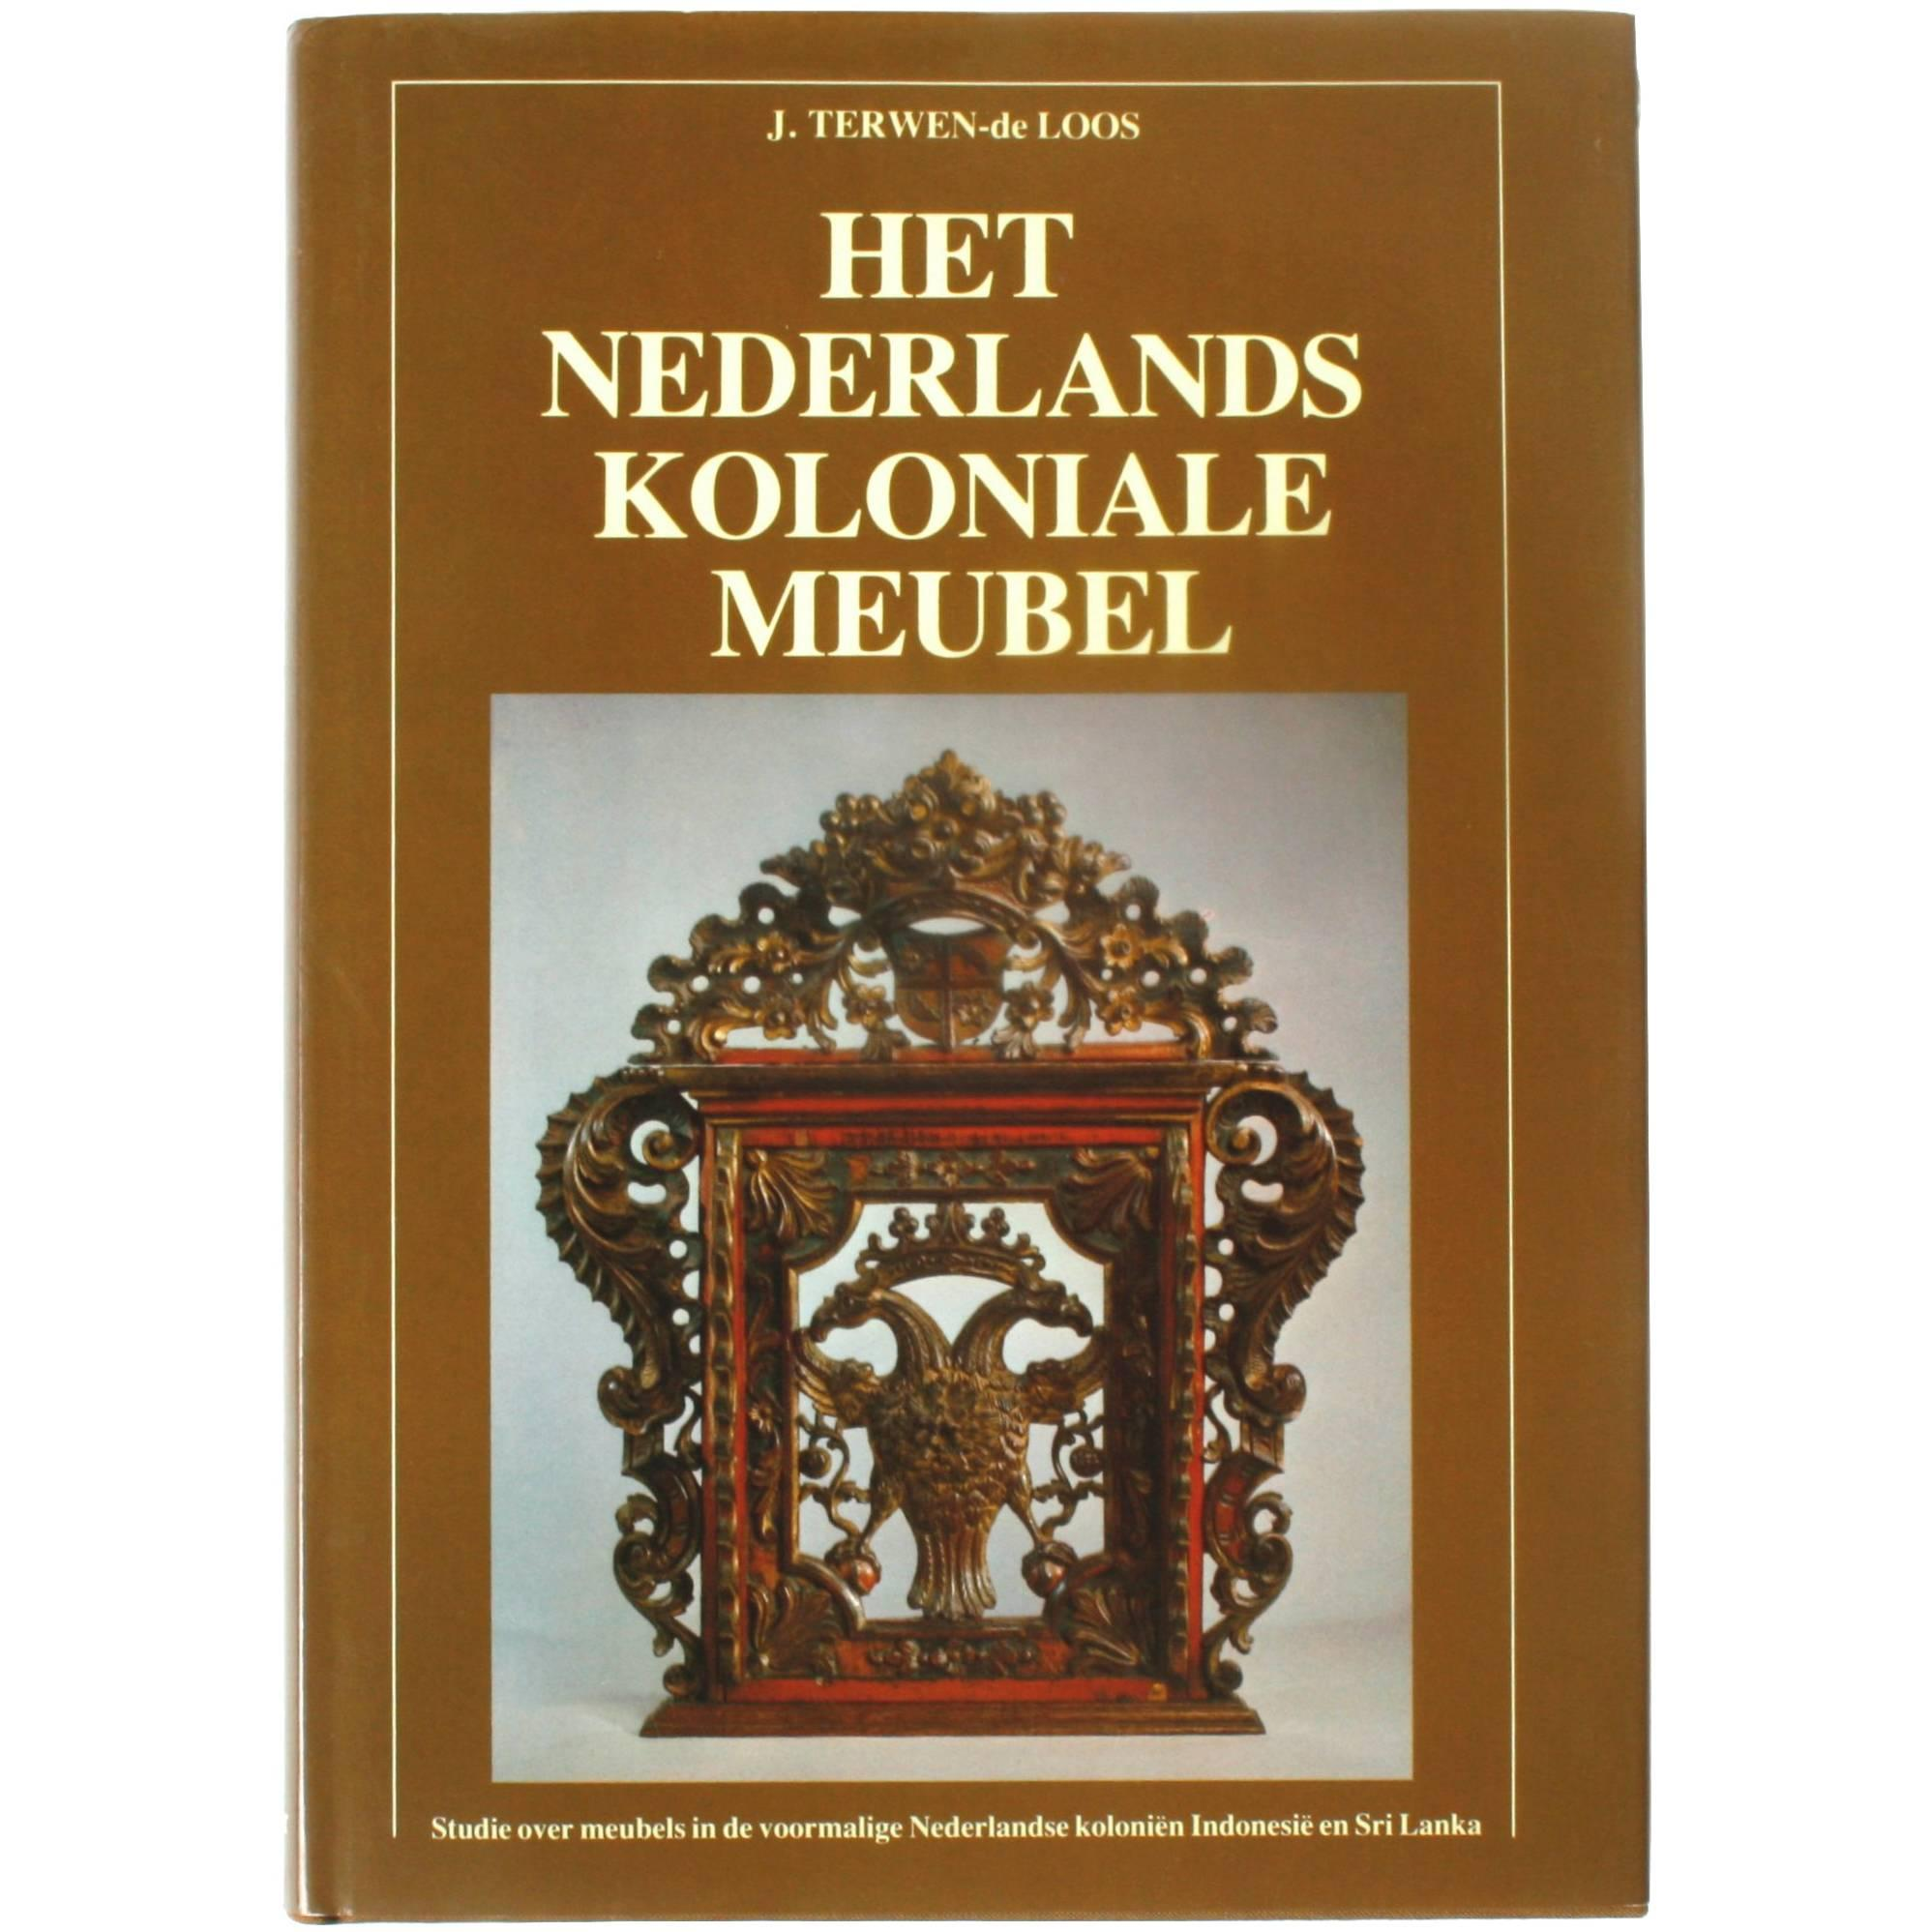 Tv Meubel Master.Dutch Colonial Furniture In Ceylon And The East Indies First